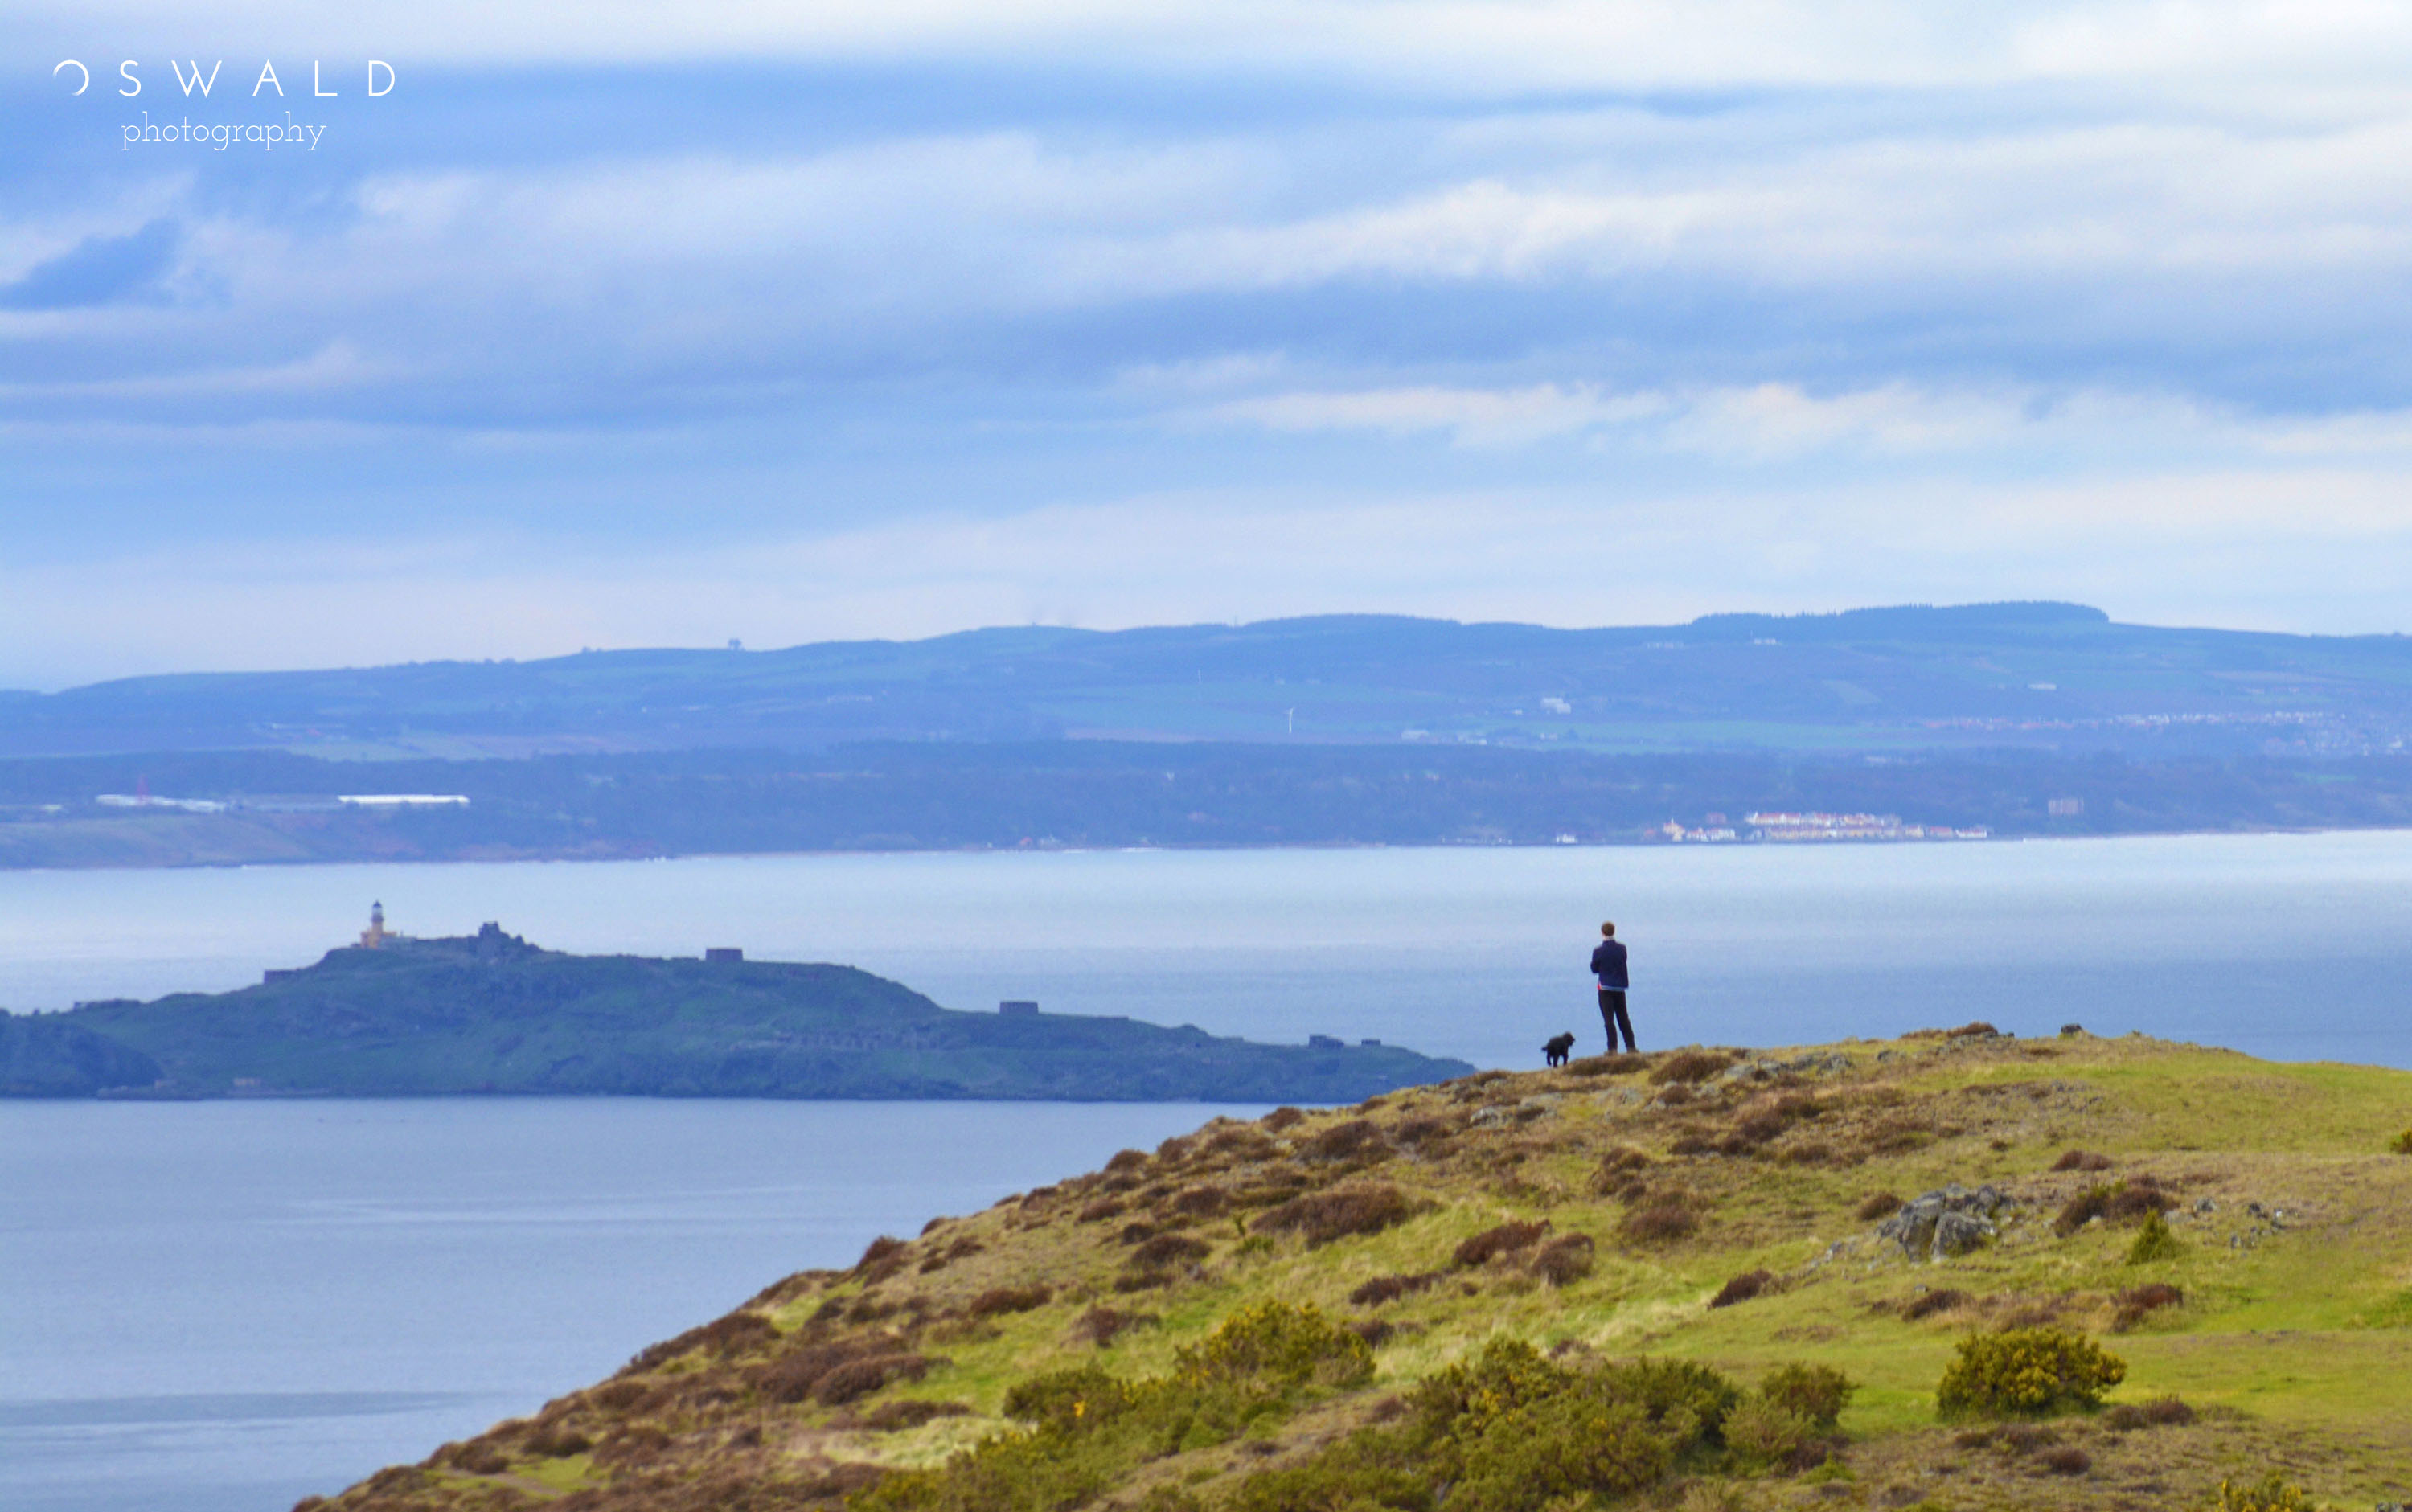 A man and his dog stand atop Arthur's Seat in Edinburgh, Scotland, overlooking the Firth of Forth as dramatic clouds roll in.